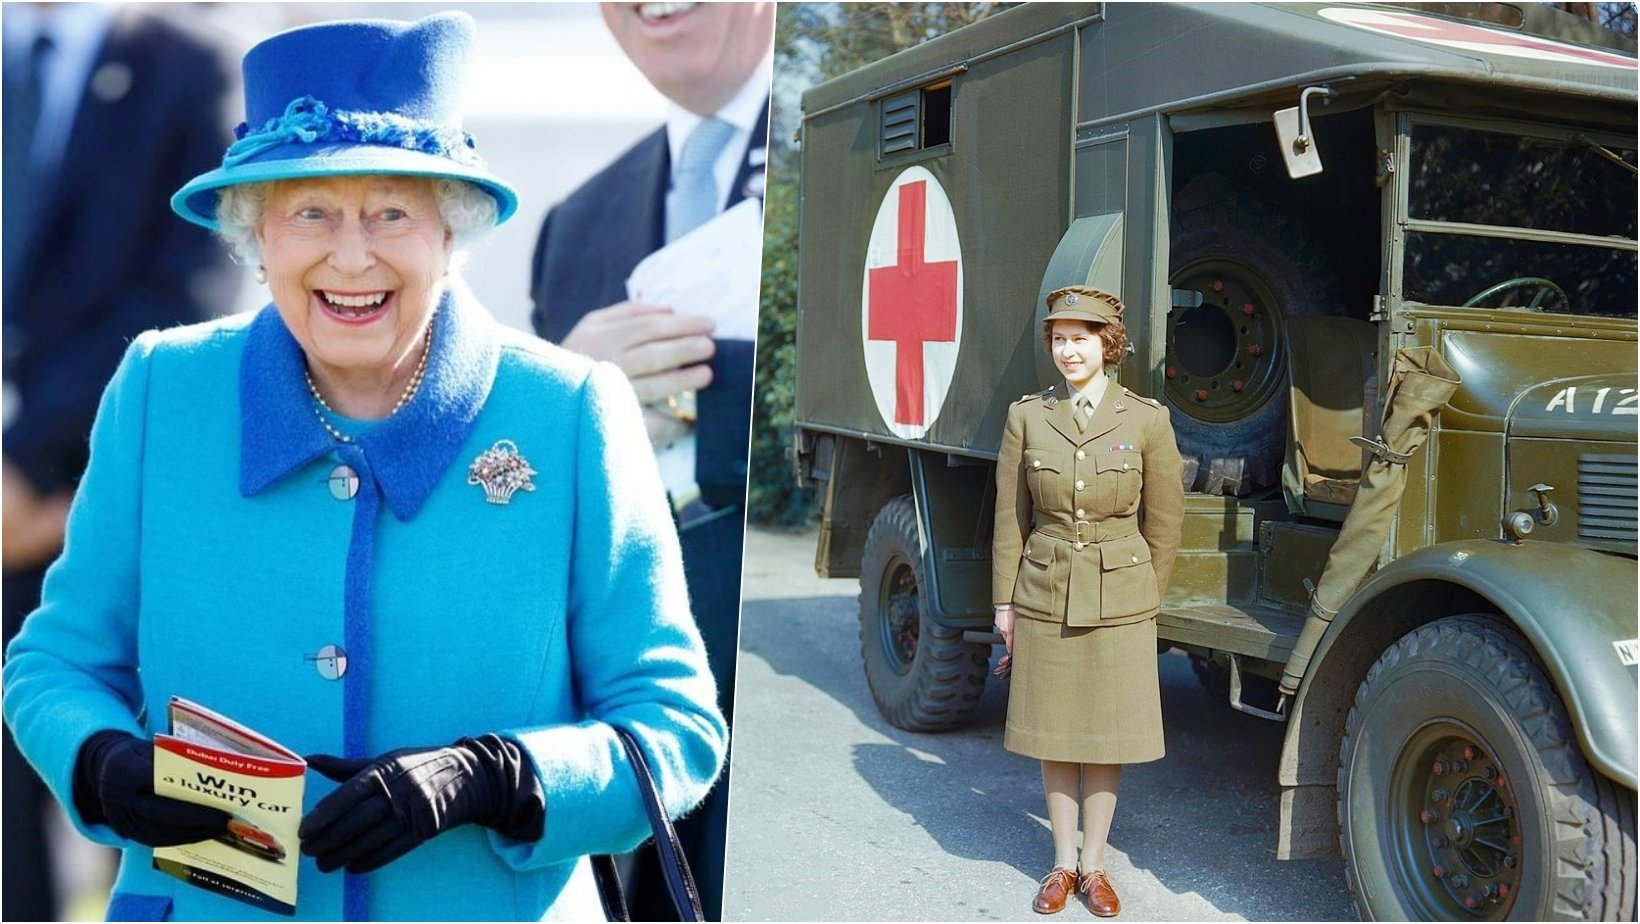 6 facebook cover 13.jpg?resize=412,232 - The Queen's Real Name Has A Special Meaning, But The Reason Why She Rarely Uses It In Full Explains A Lot About Her Life As A Royal